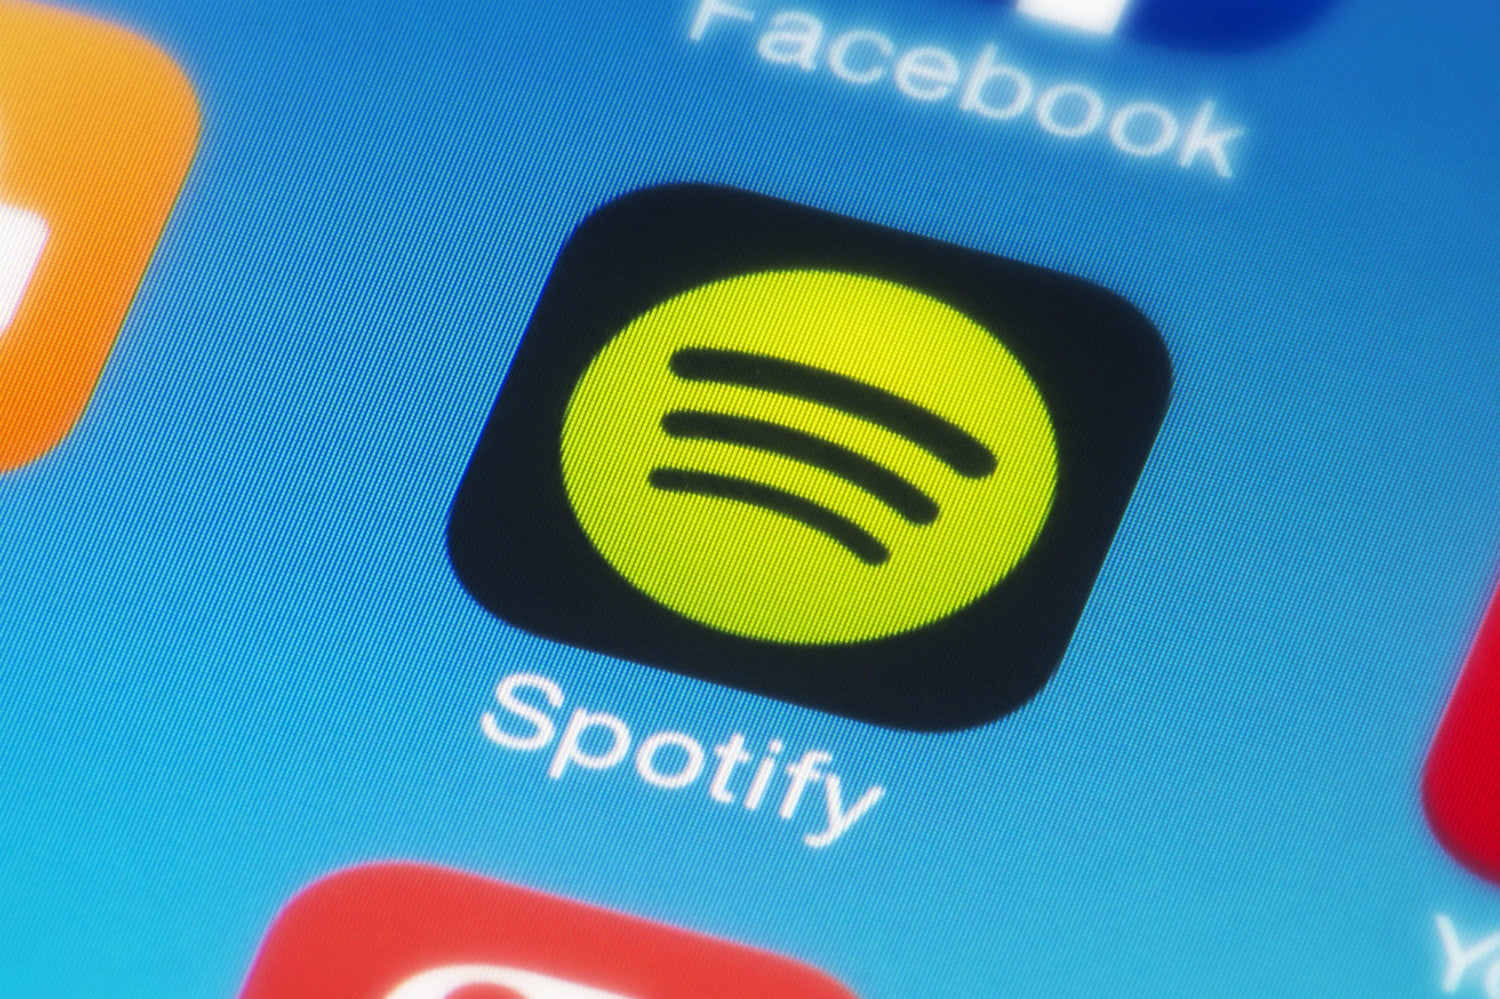 How Much is Spotify Premium, and How Can You Get It at a Discount